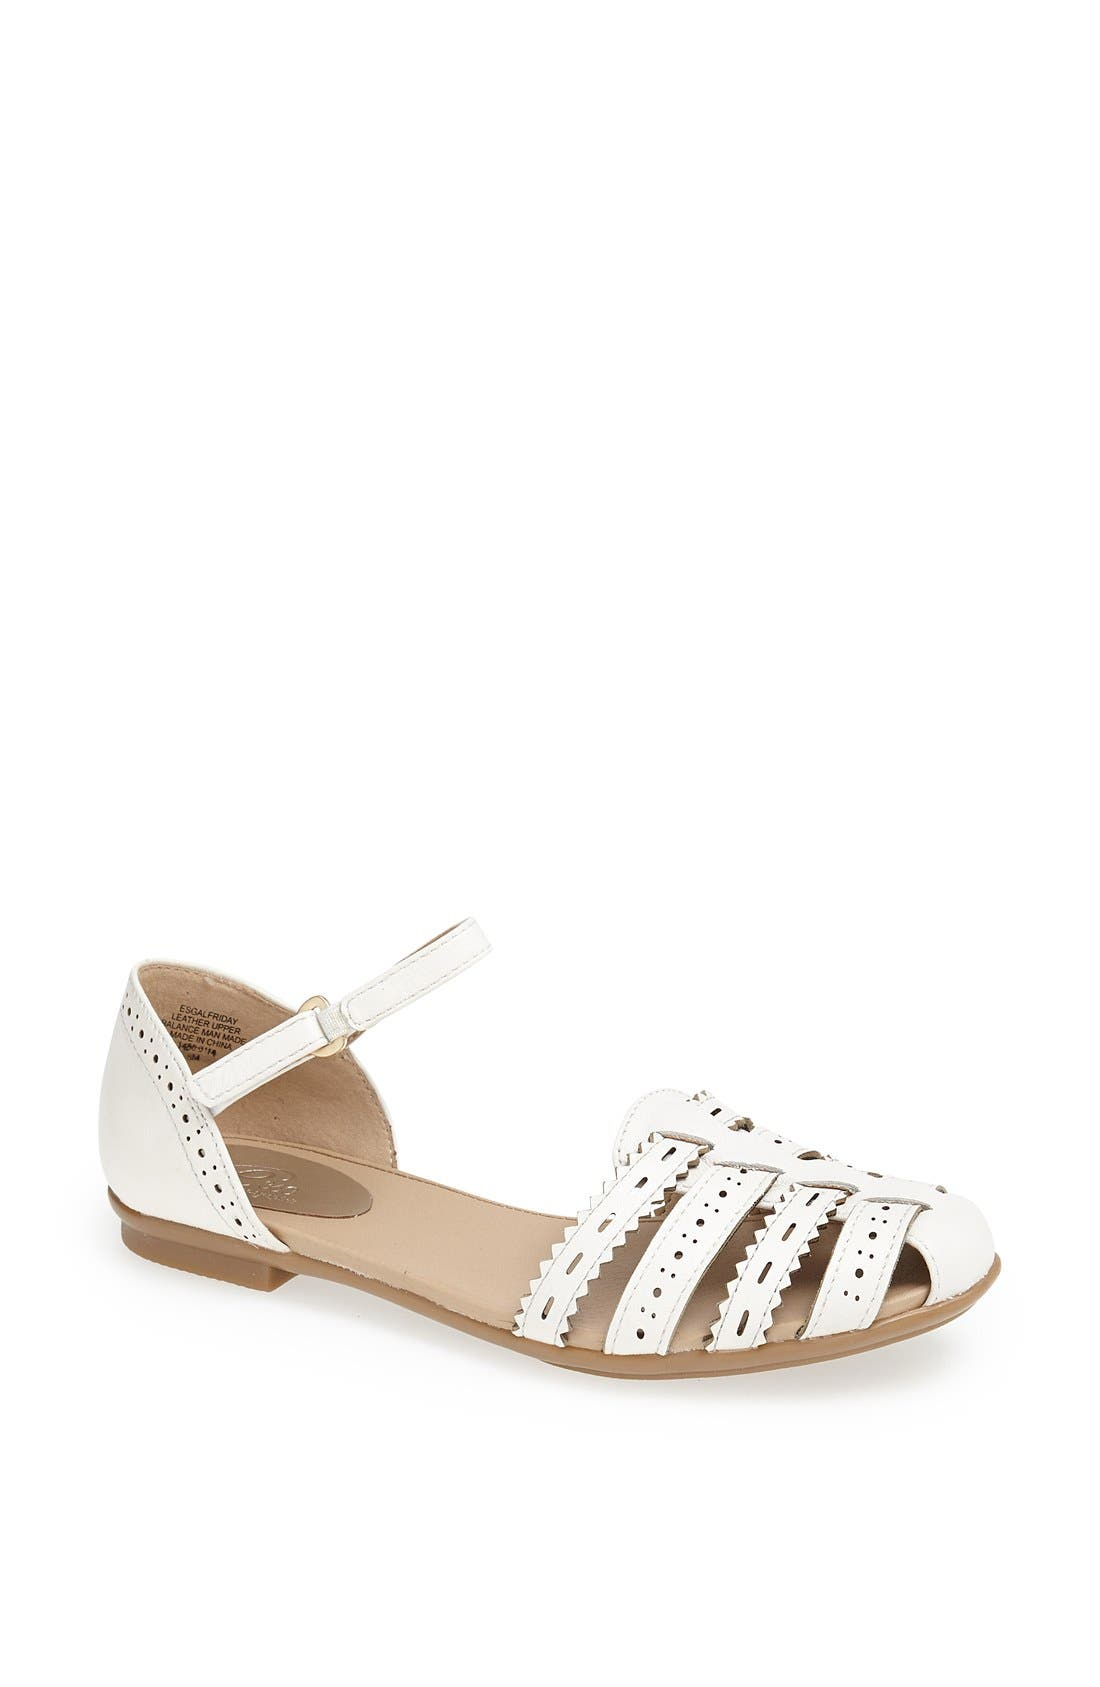 Alternate Image 1 Selected - Easy Spirit 'e360 - Galfriday' Pinked & Perforated Leather Quarter Strap Sandal (Women)